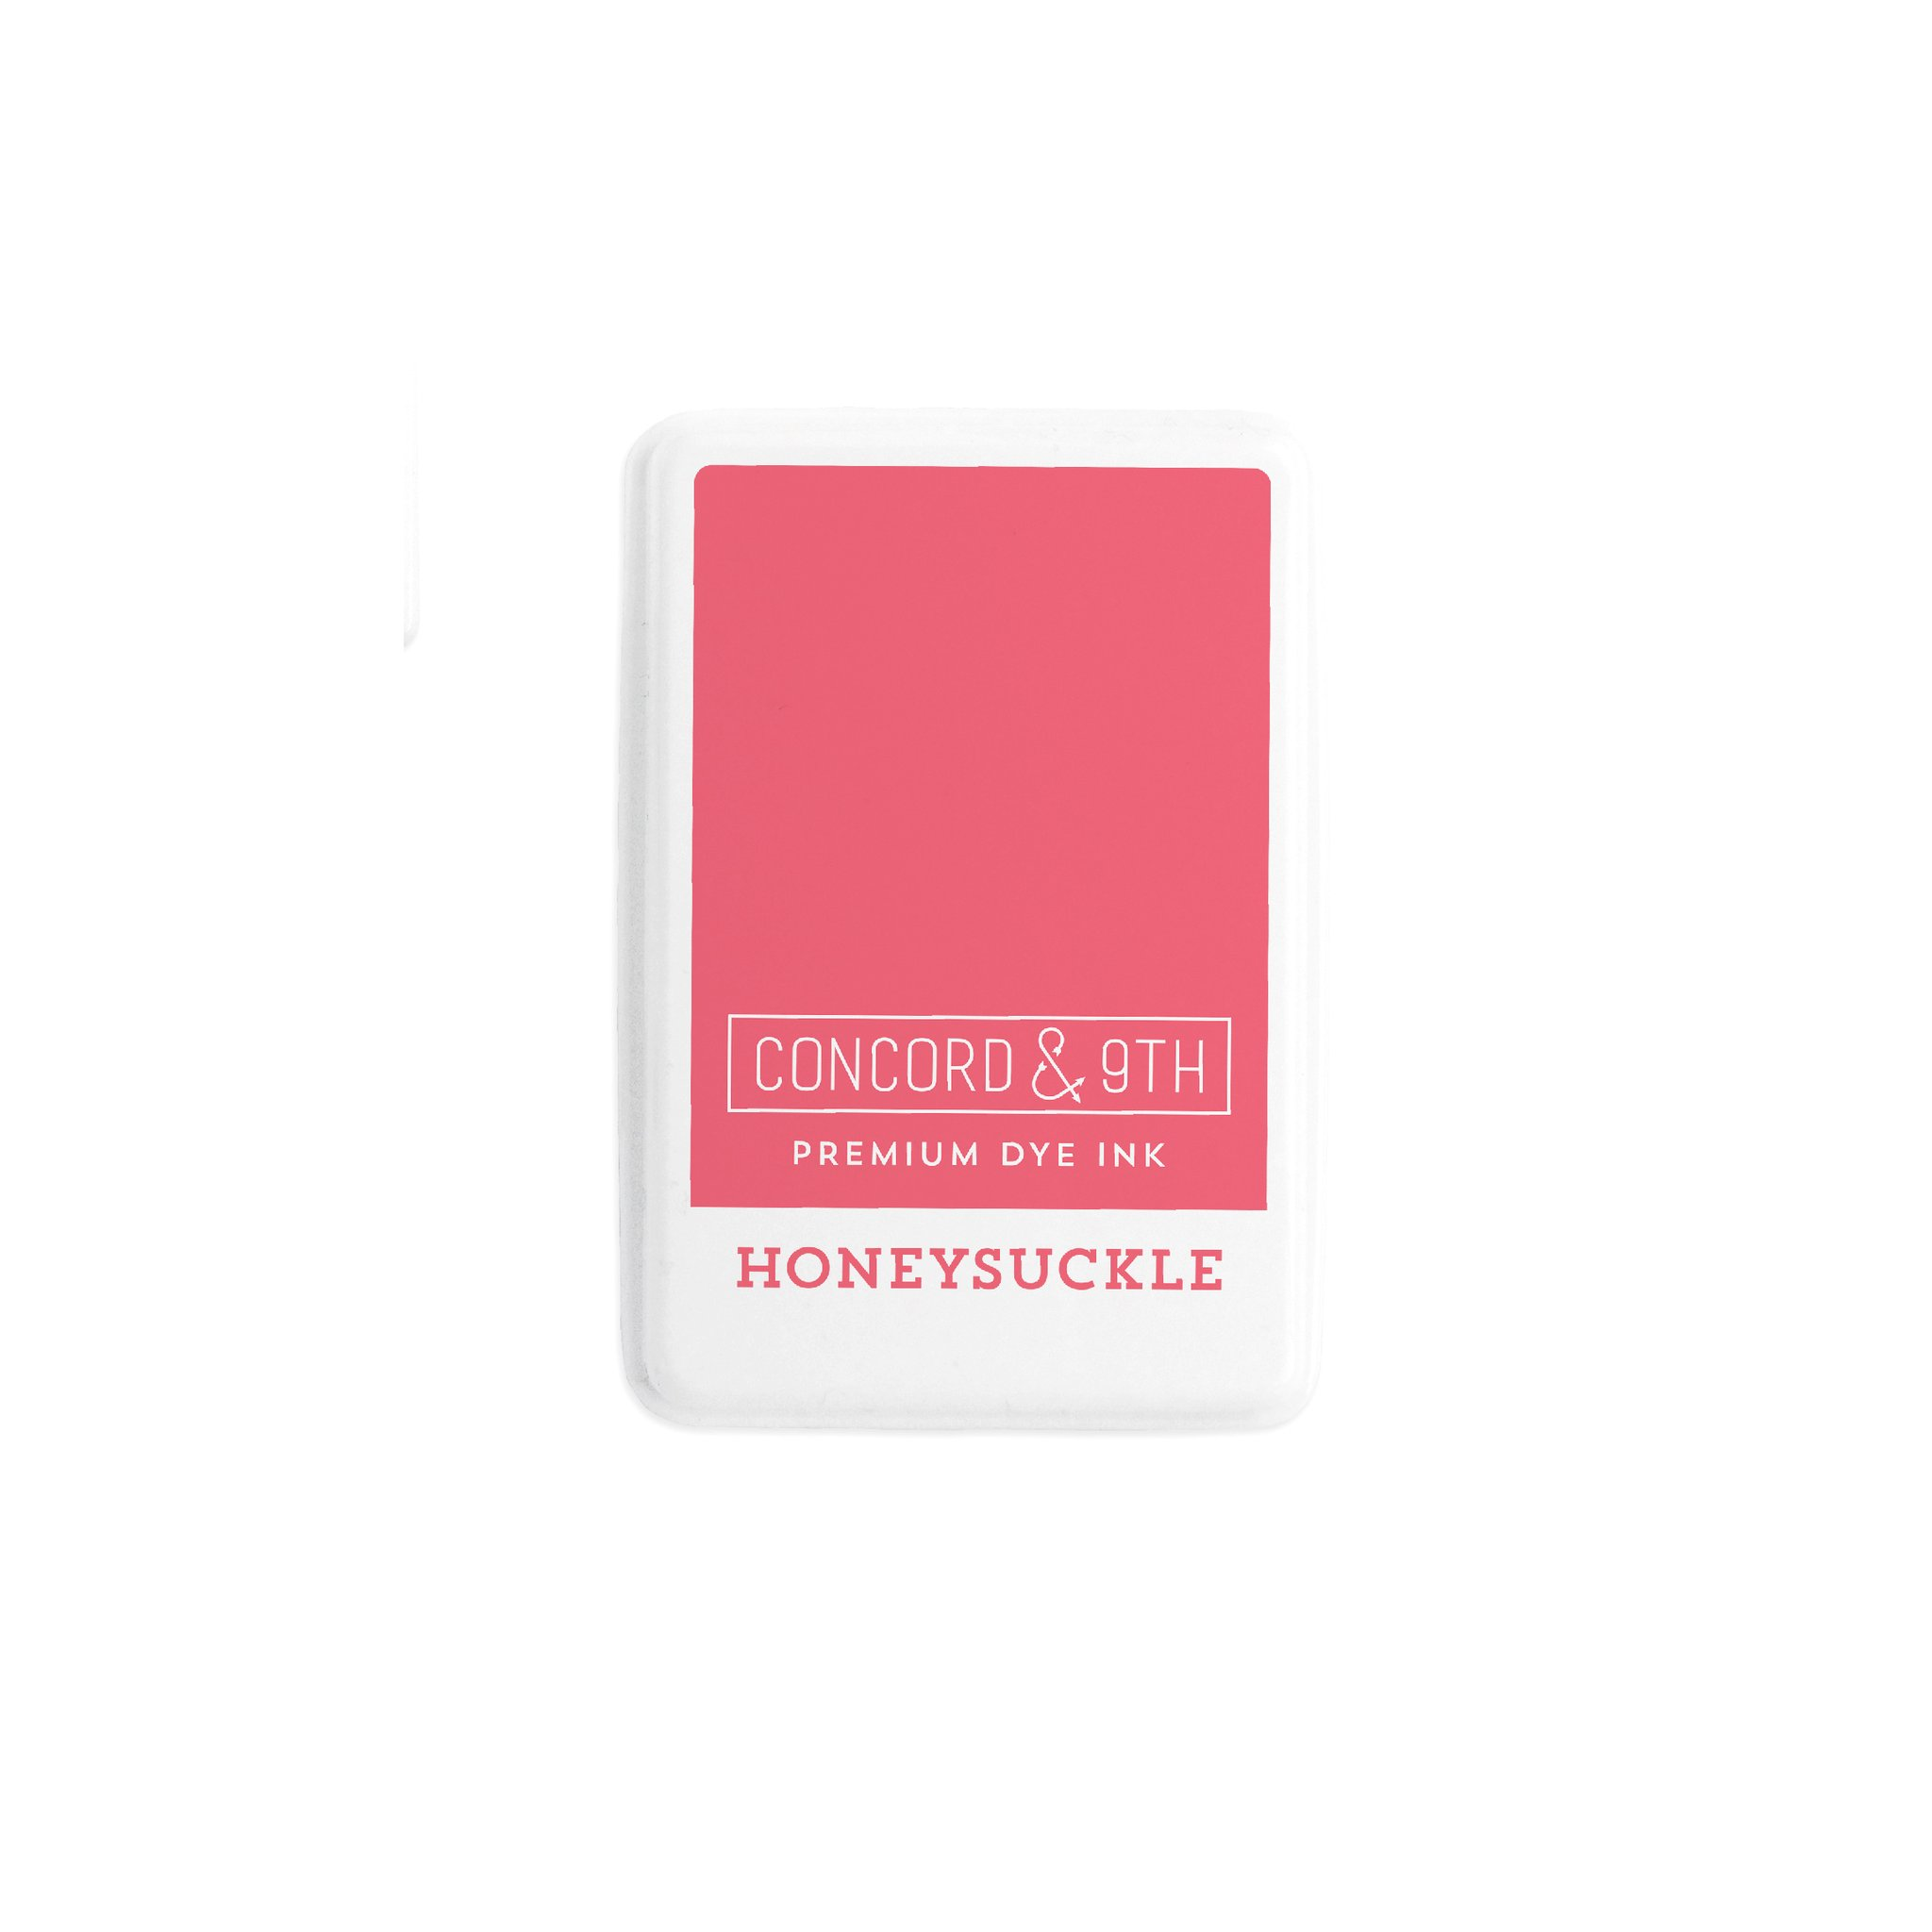 *NEW* - Concord & 9th - HONEYSUCKLE INK PAD